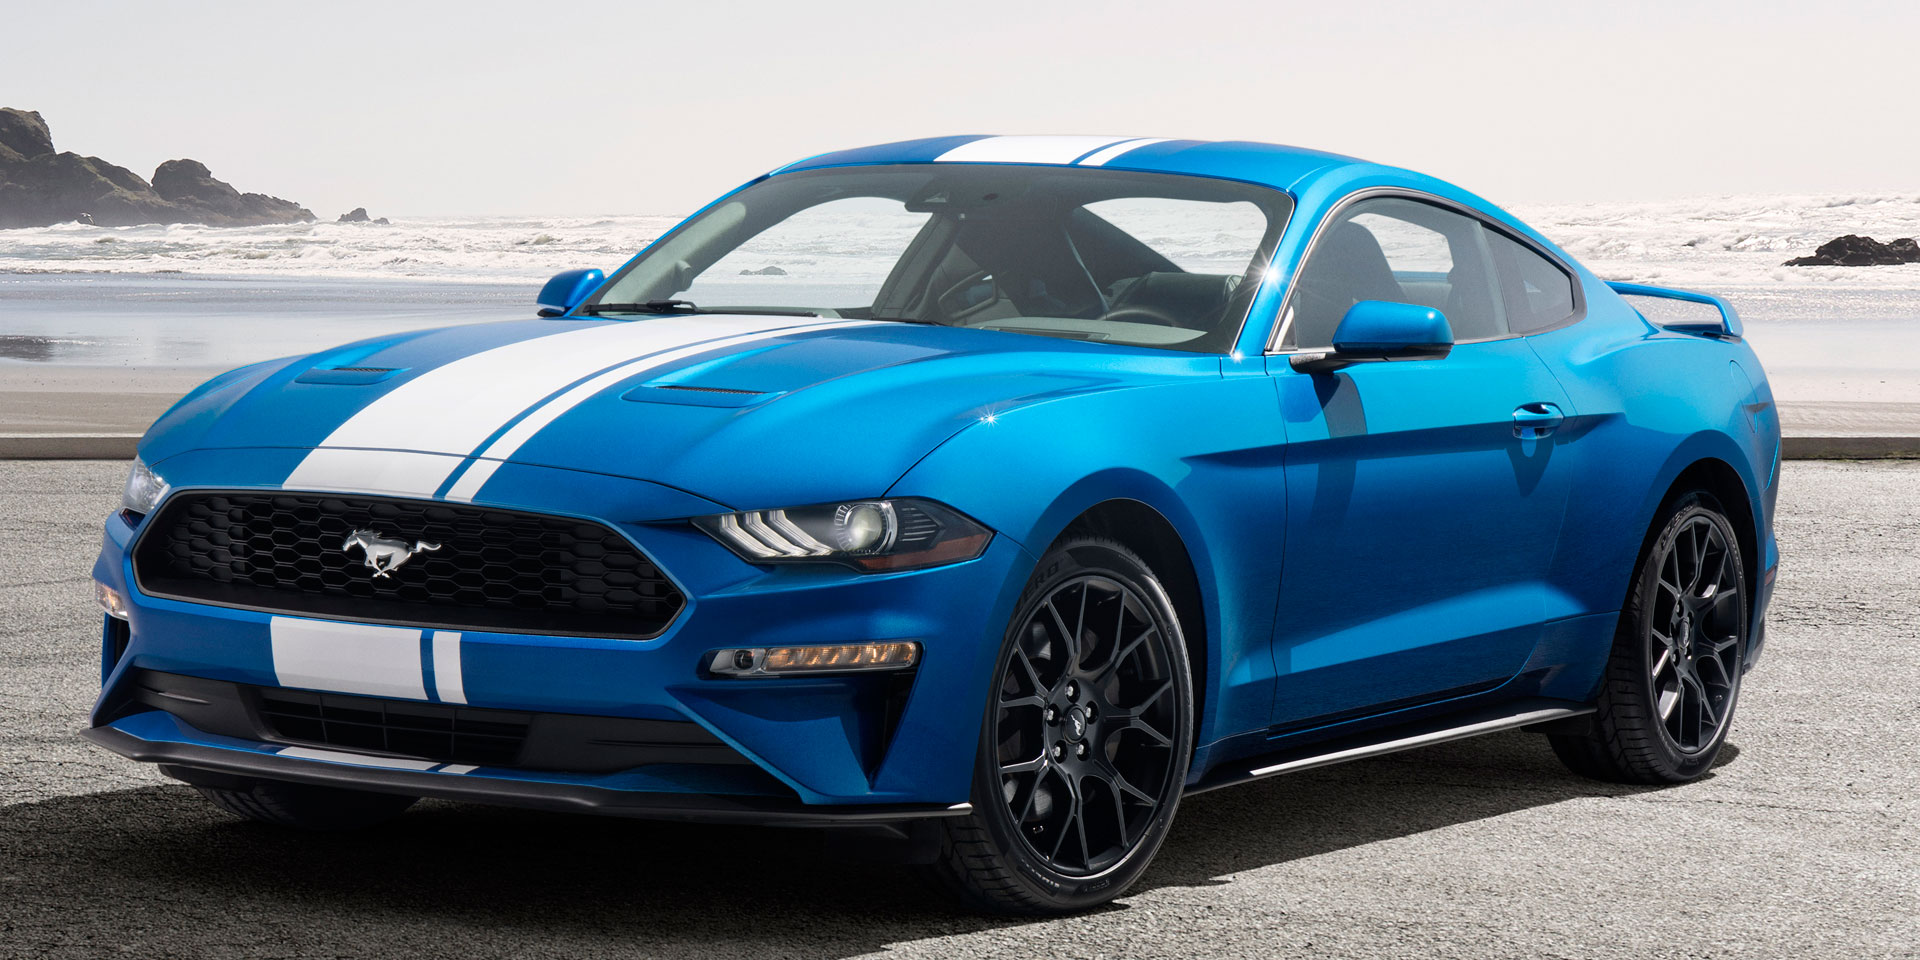 2019 Ford Mustang Vehicles On Display Chicago Auto Show Events Car S Videos The Is A 4 Seat Sports Thats Available As 2 Door Coupe And Convertible Only Rear Wheel Drive Models Are